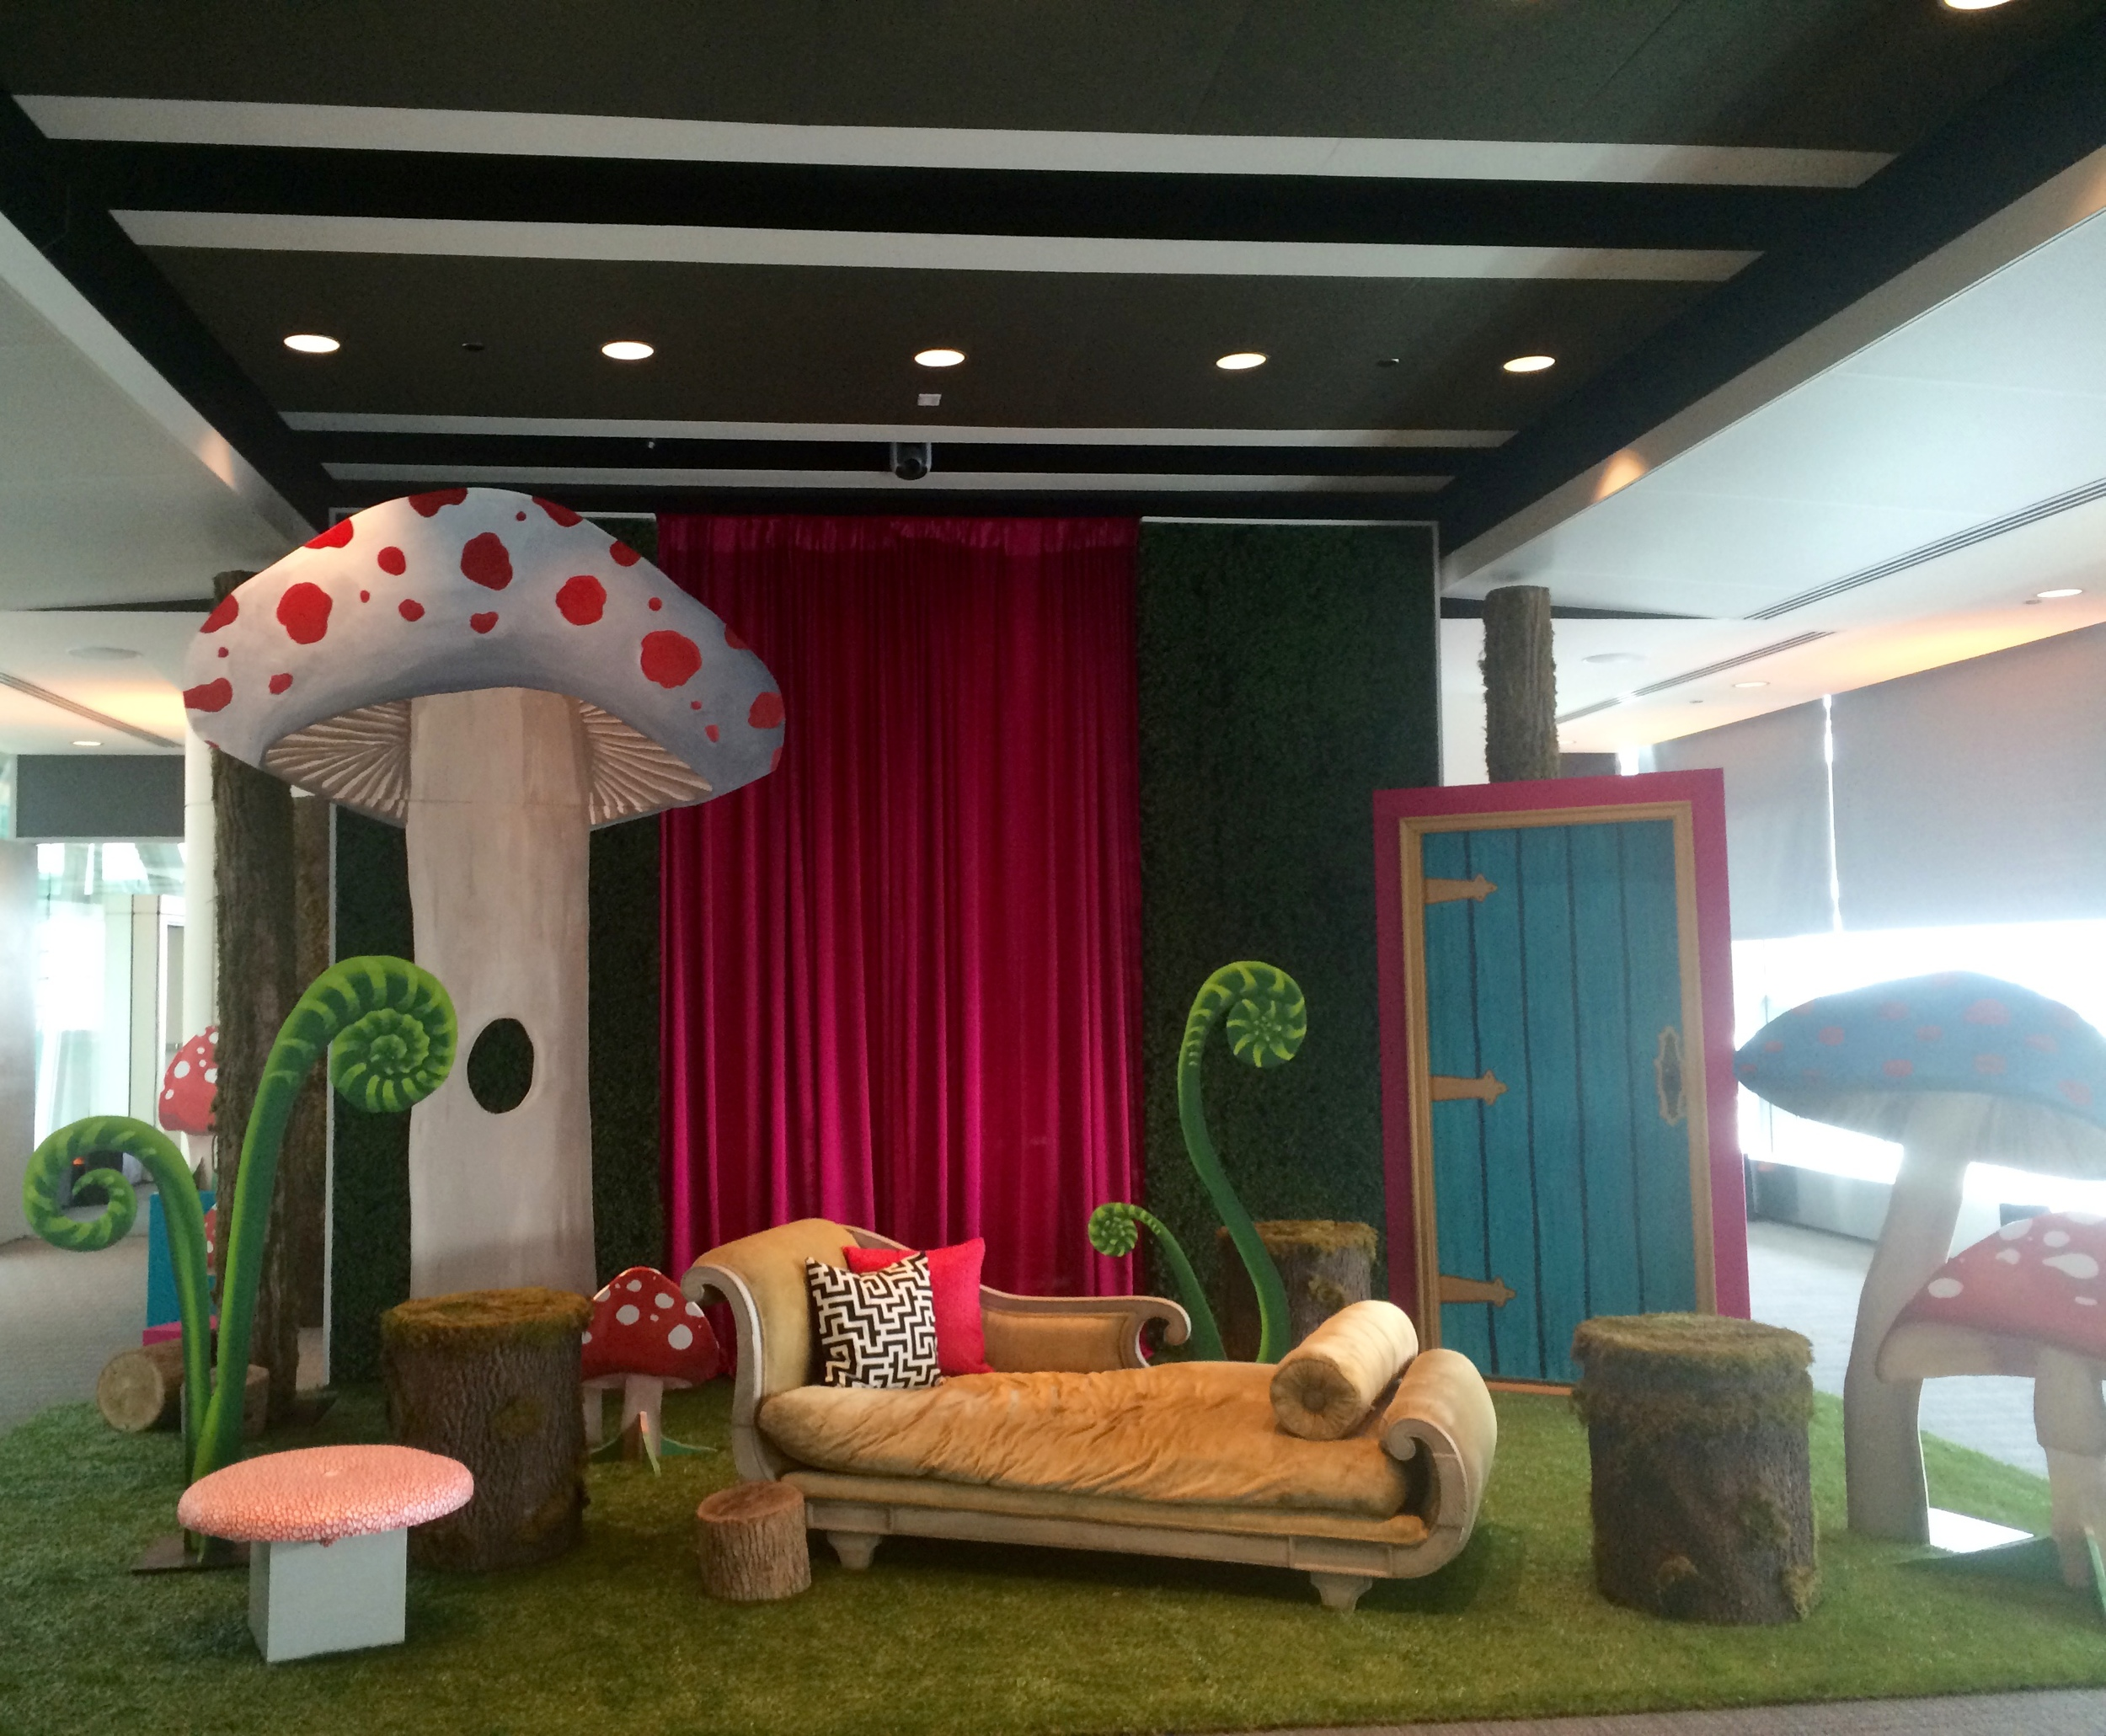 LARGER-THAN-LIFE INTERACTIVE ALICE IN WONDERLAND PHOTO BOOTH SCENE